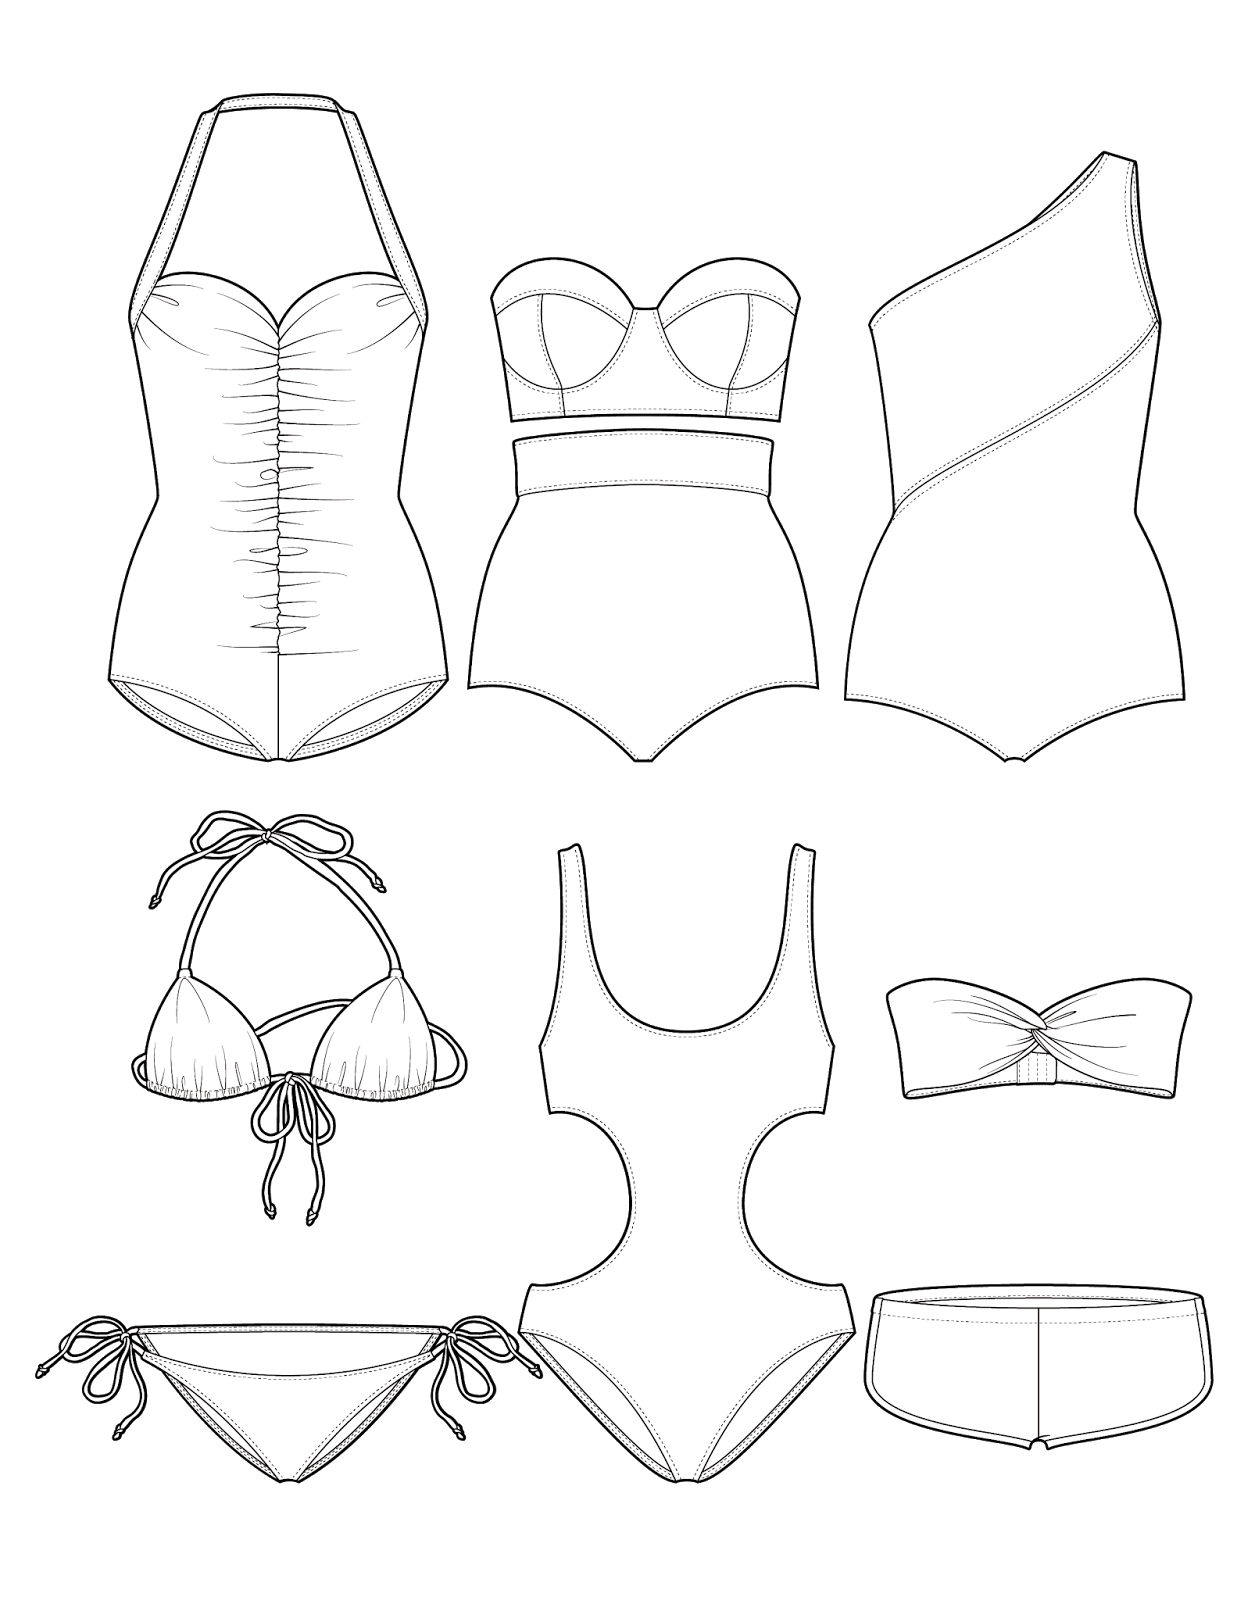 Drawing diary apparel. The spinsterhood diaries swimsuit